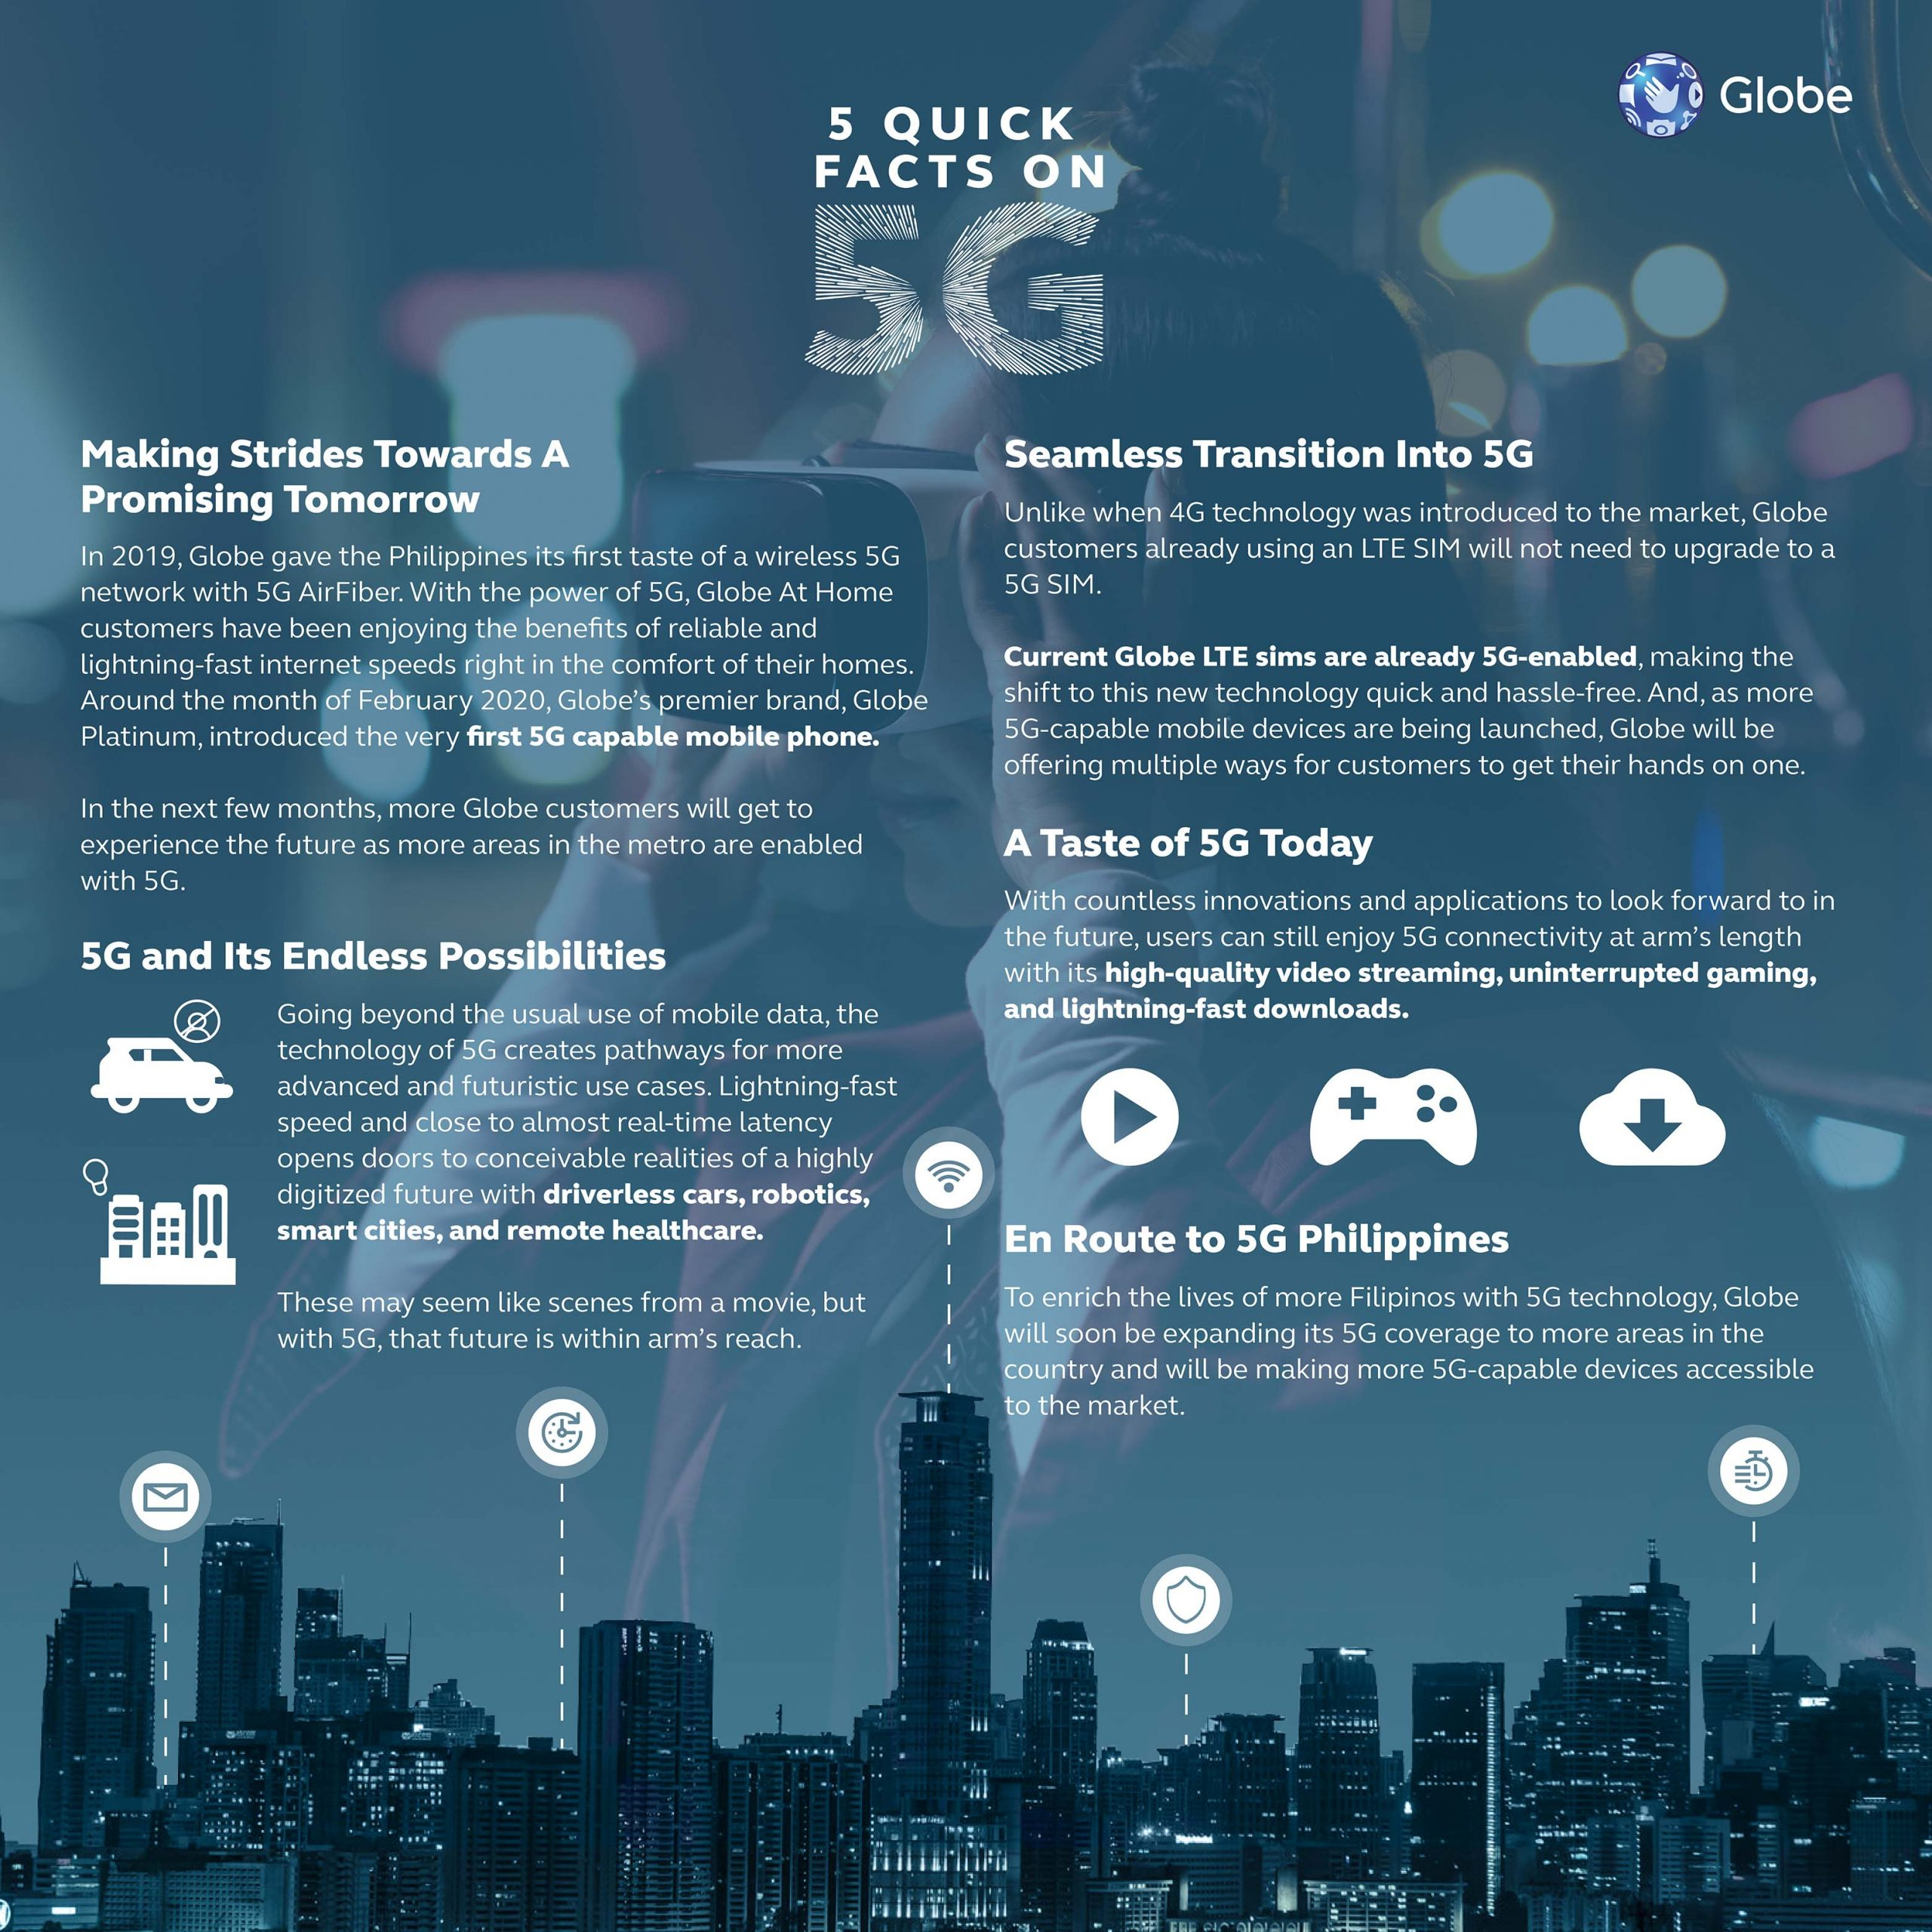 globe-5g-locations-availability-philippines